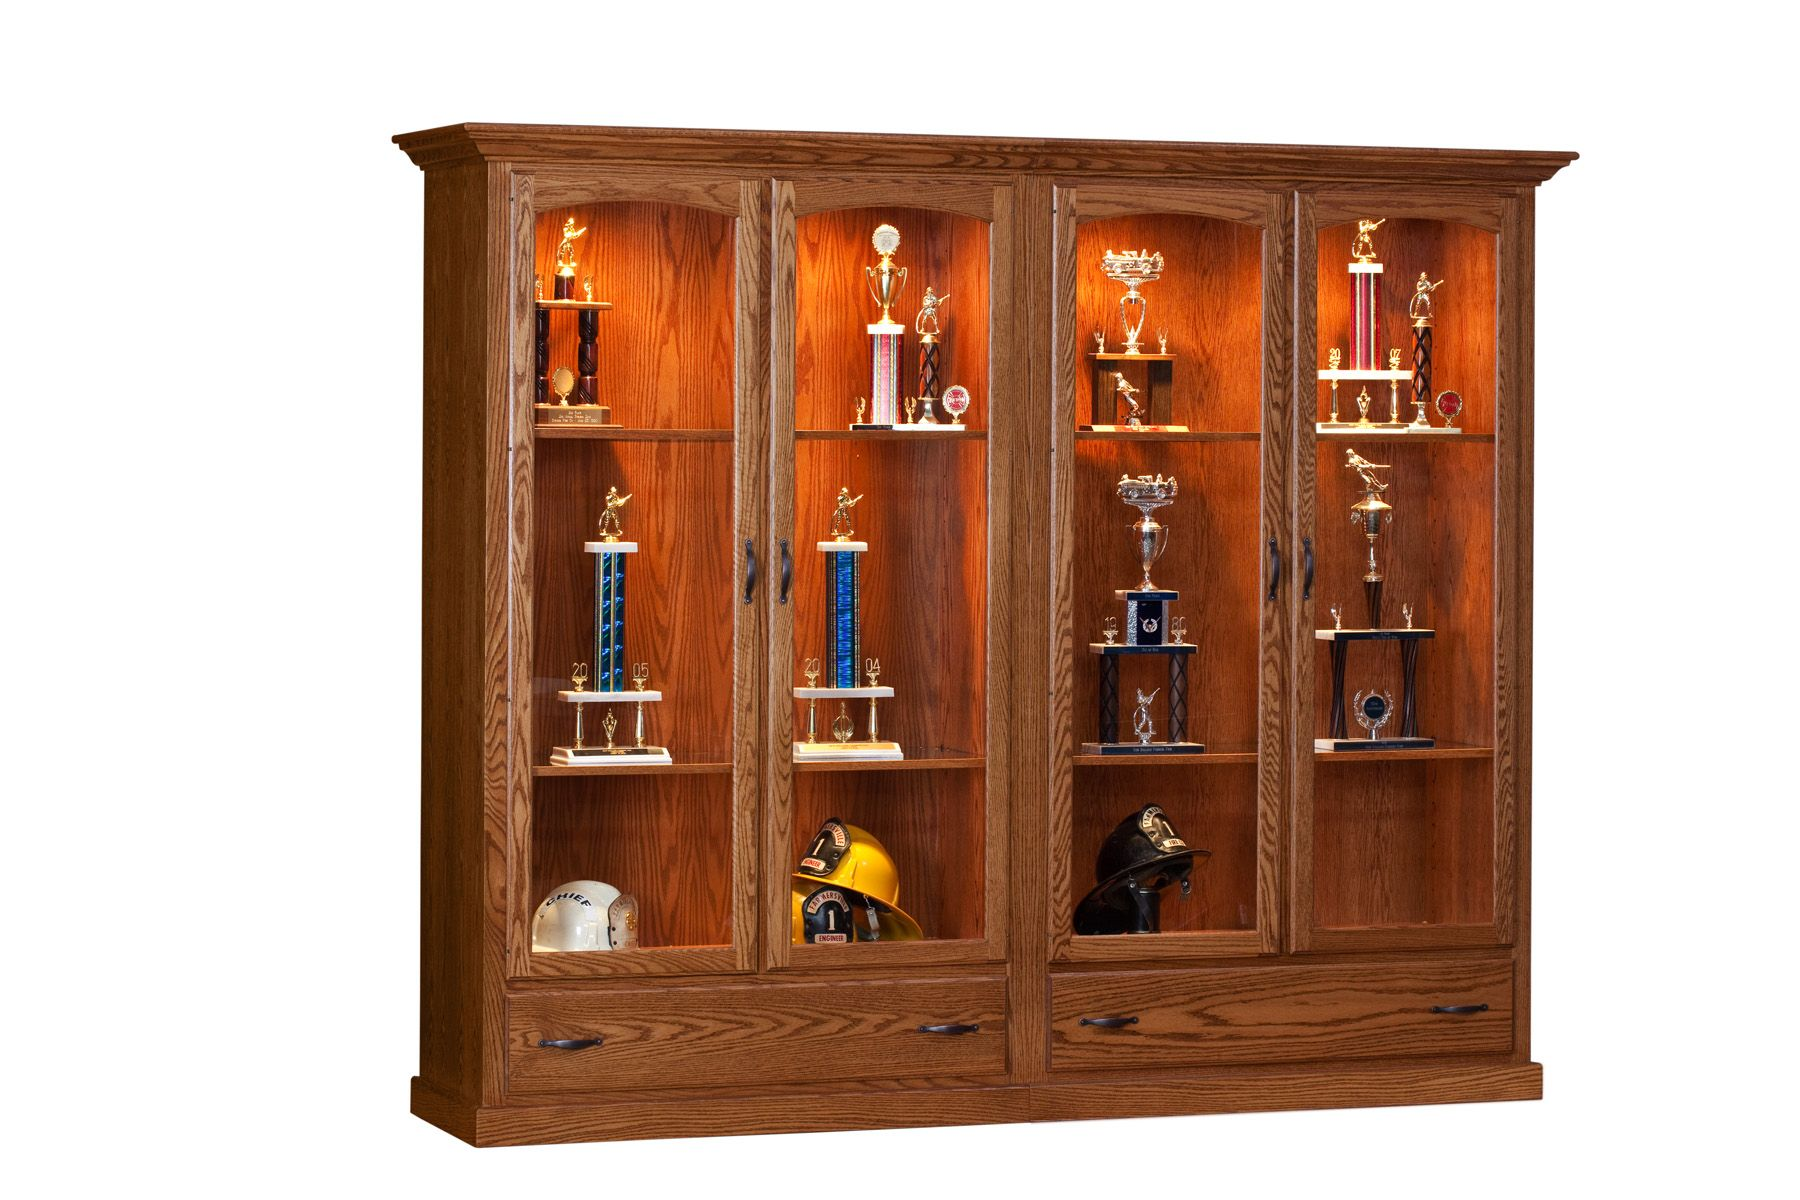 Dining Room Case Goods Curio Cabinets Trophy Case Display